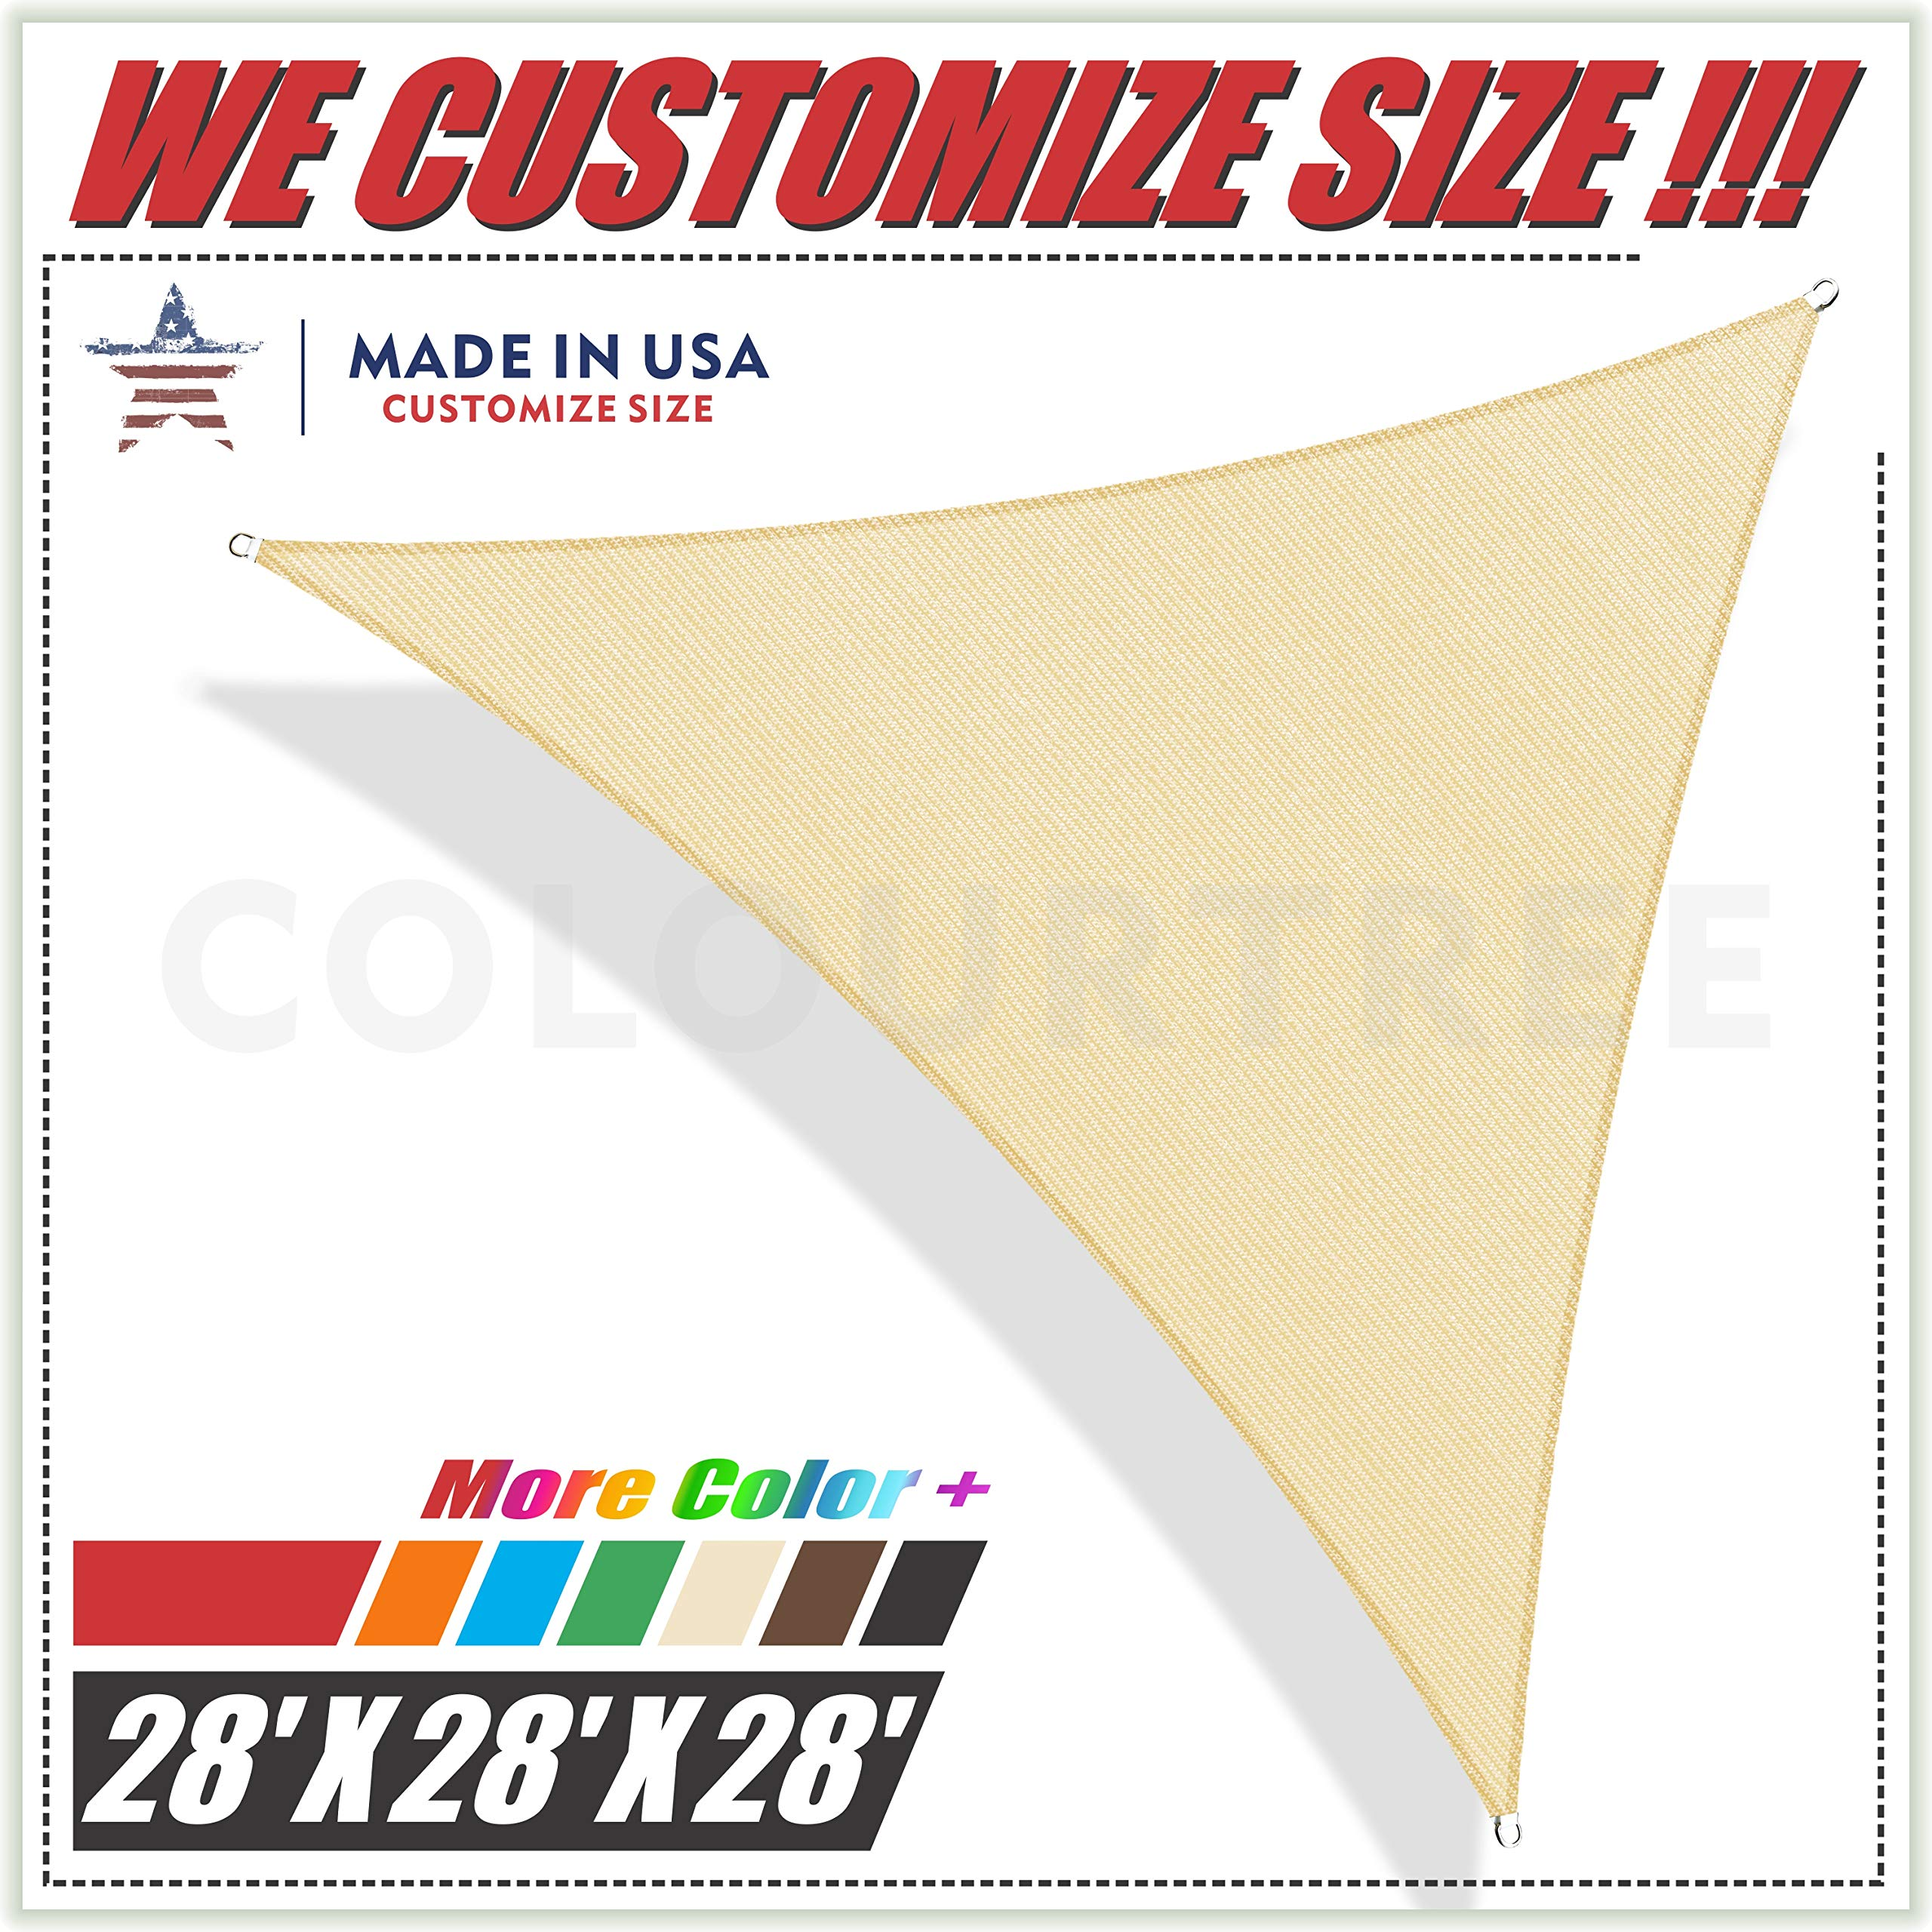 ColourTree 28' x 28' x 28' Beige Triangle Sun Shade Sail Canopy – UV Resistant Heavy Duty Commercial Grade -We Make Custom Size